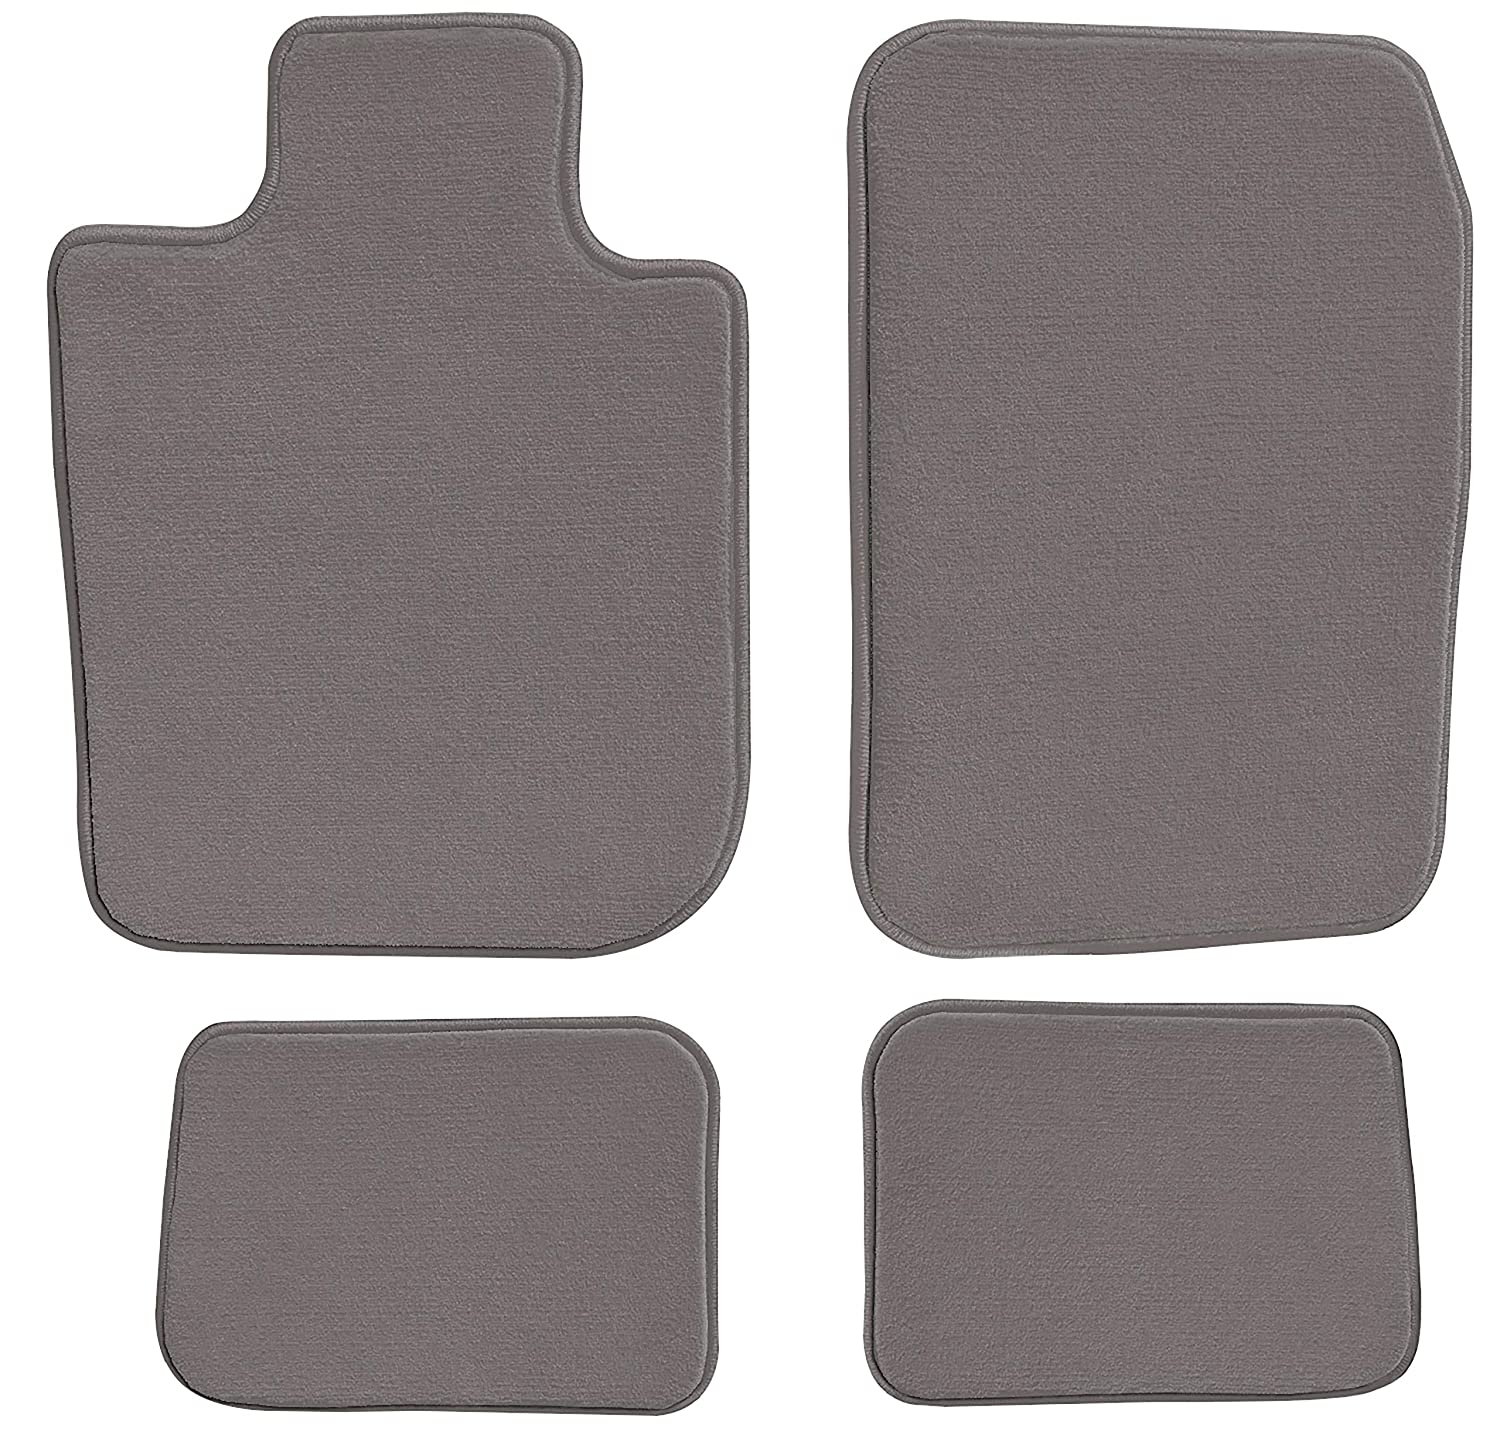 GGBAILEY D4457A-S1A-GY-LP Custom Fit Automotive Carpet Floor Mats for 1995 Audi S6 Wagon Grey Loop Driver Passenger /& Rear